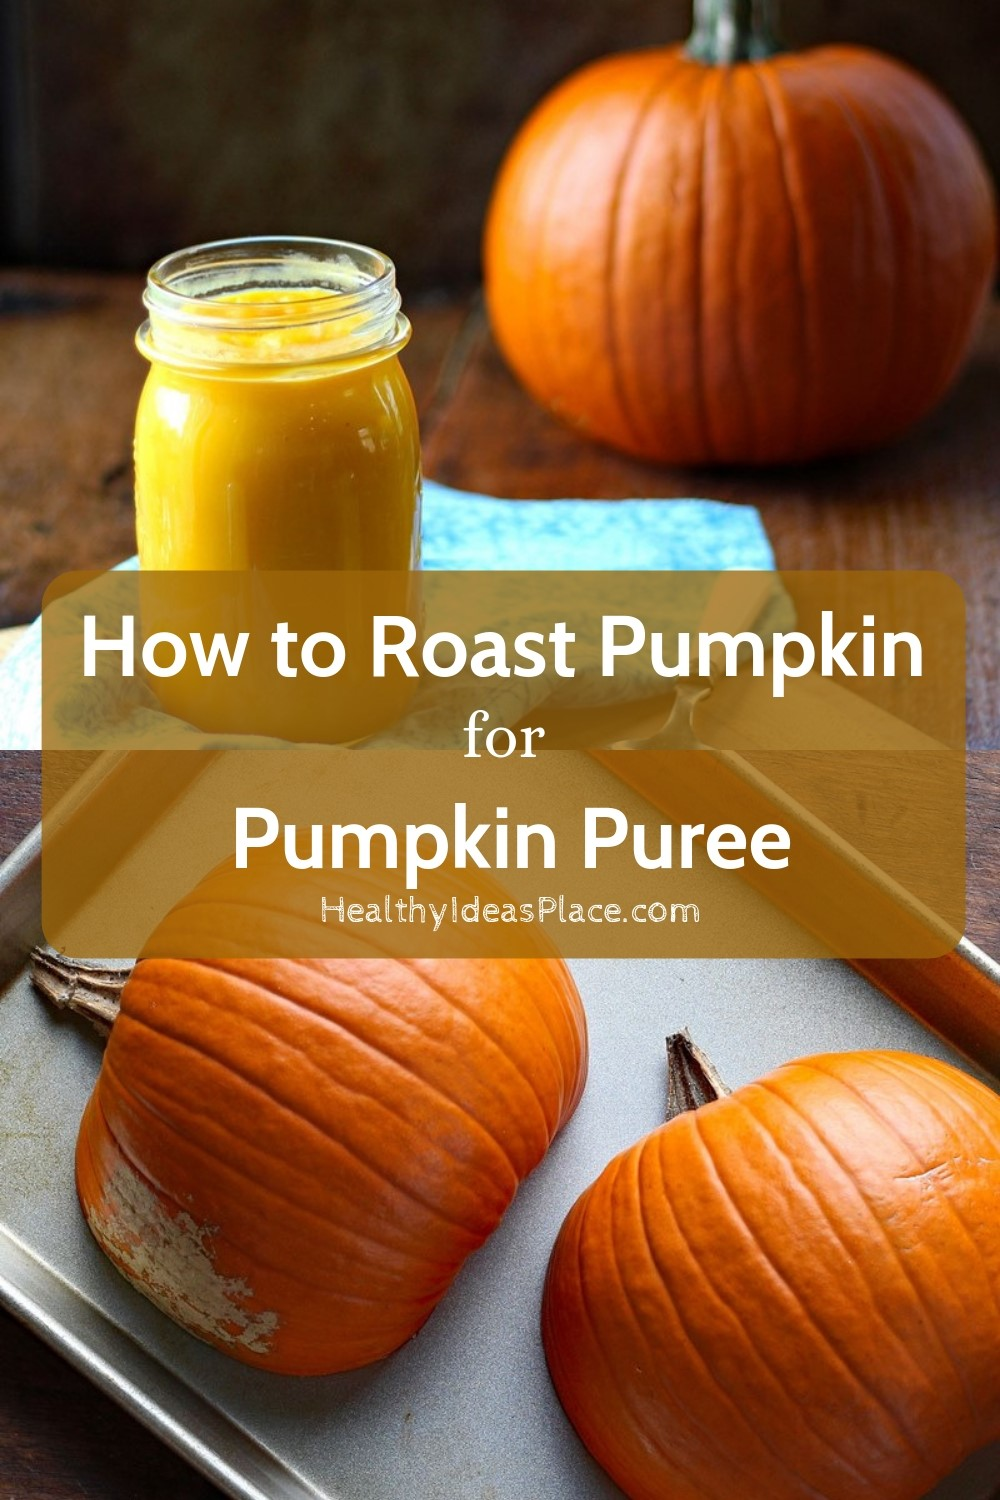 It's easy to roast pumpkin for pumpkin puree! The flavor can't be beat and it's a great way to use up any pie pumpkins you may have had around for decorations instead of throwing them away.